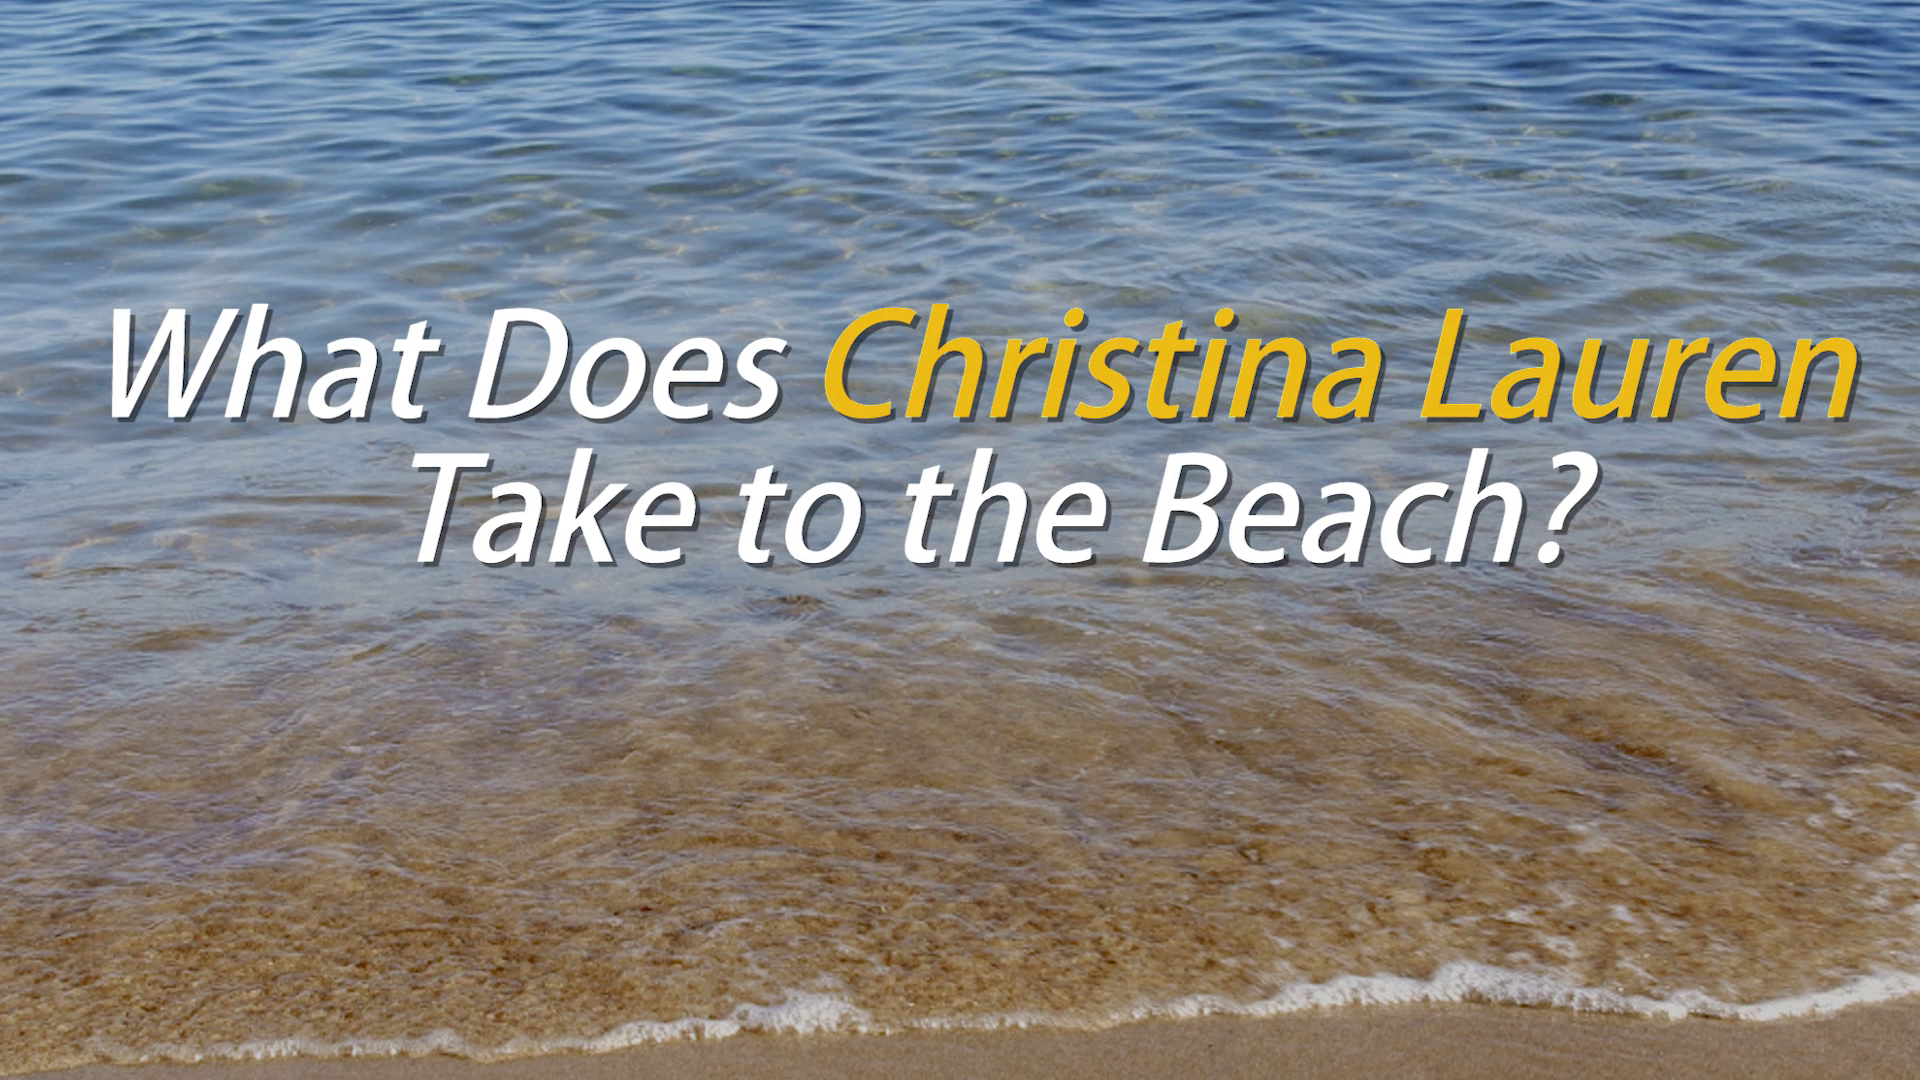 What Does Christina Lauren Take to the Beach?